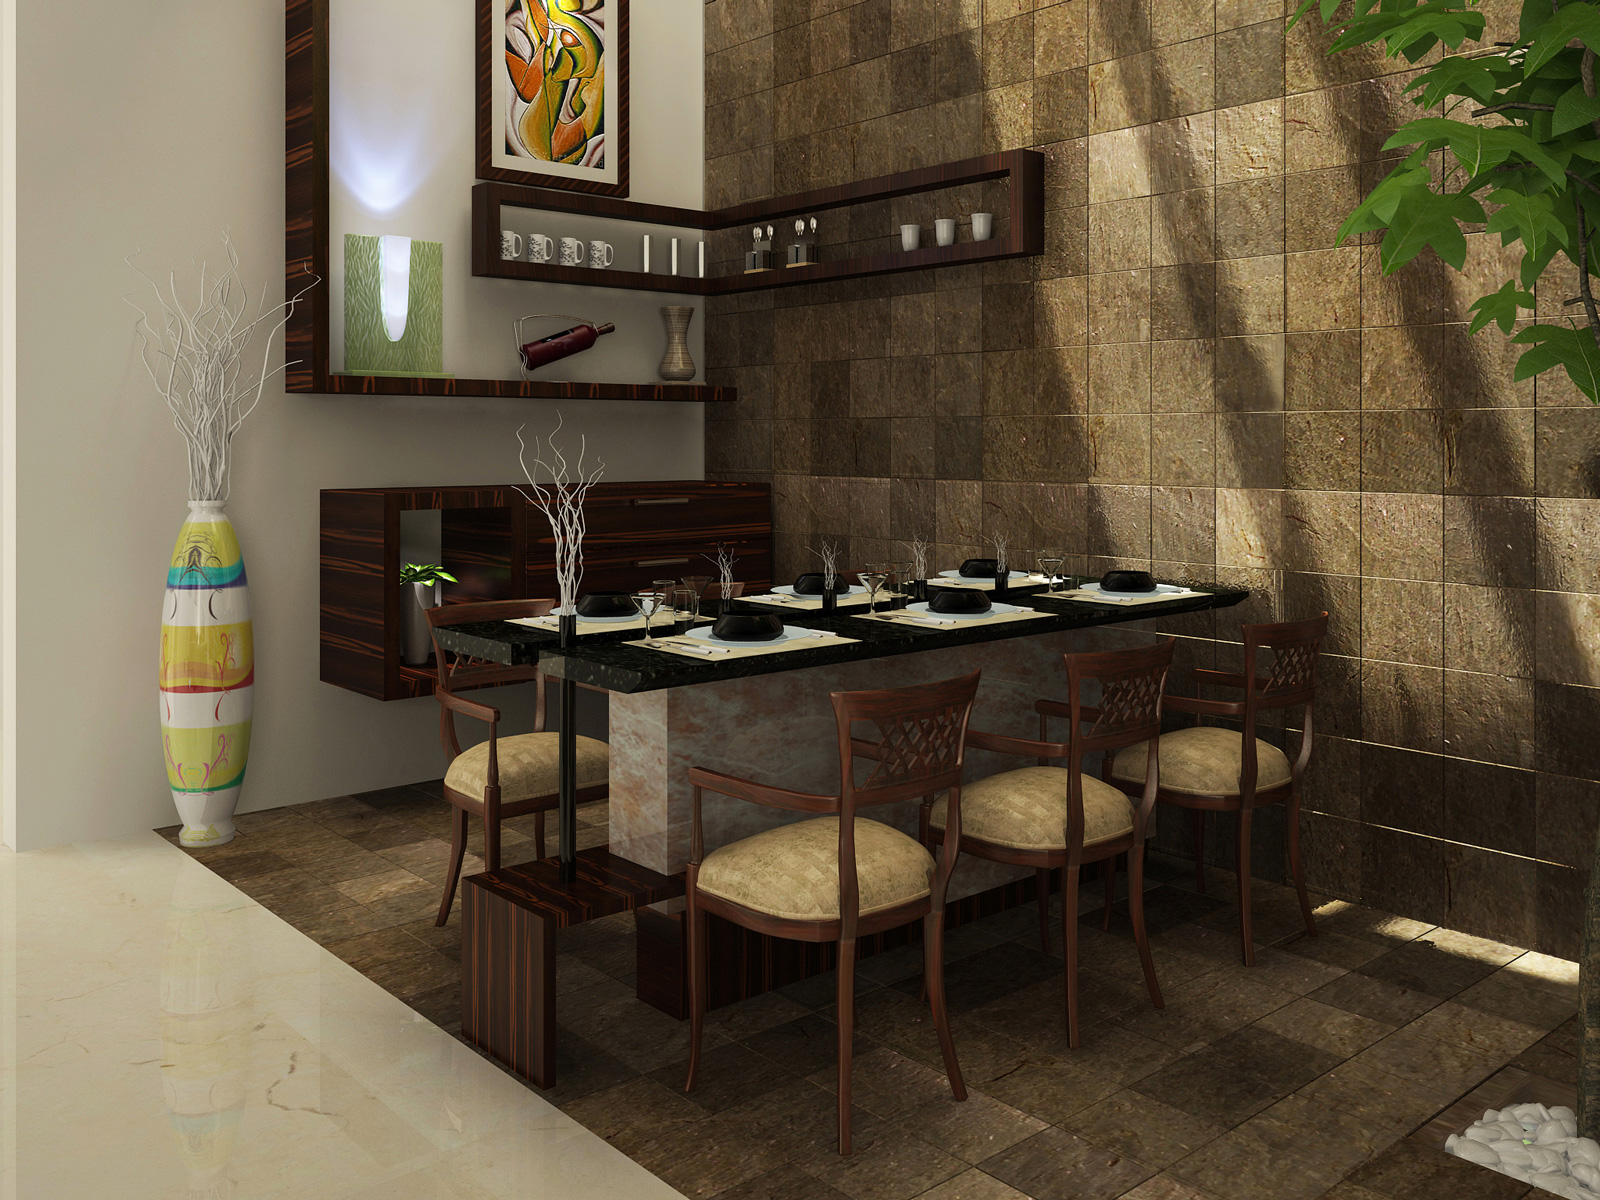 Kerala dining room design style photos home interior in india for Latest dining room designs